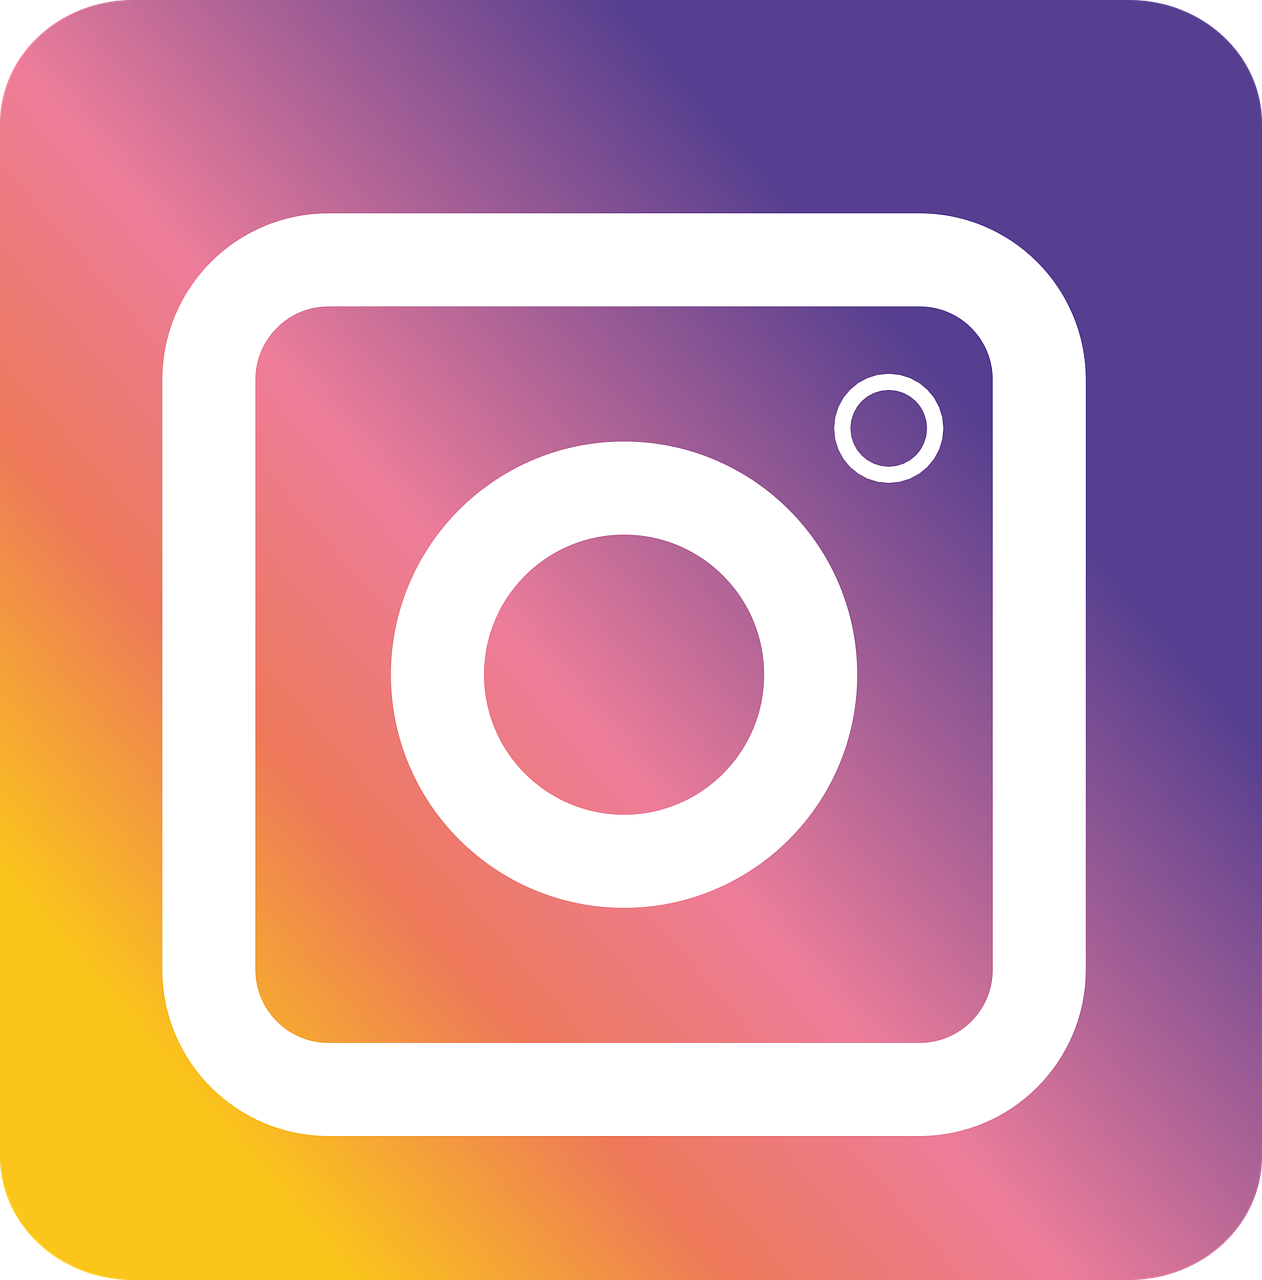 How to Remove All Follow Requests on Instagram